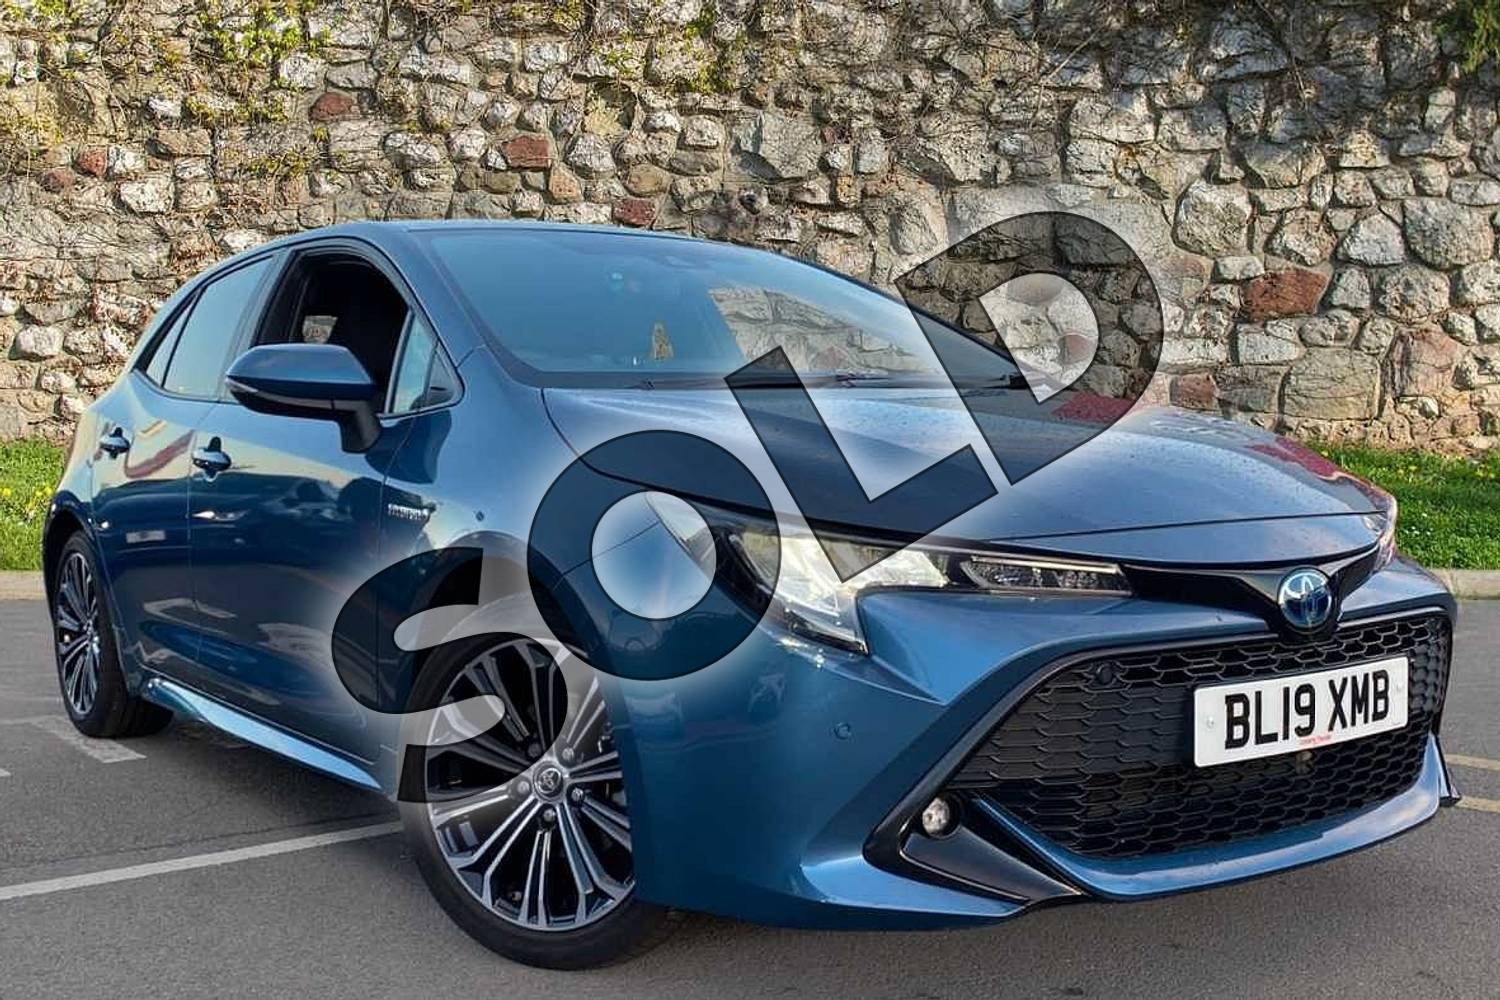 2019 Toyota Corolla Hatchback 1.8 VVT-i Hybrid Design 5dr CVT in Denim Blue at Listers Toyota Coventry